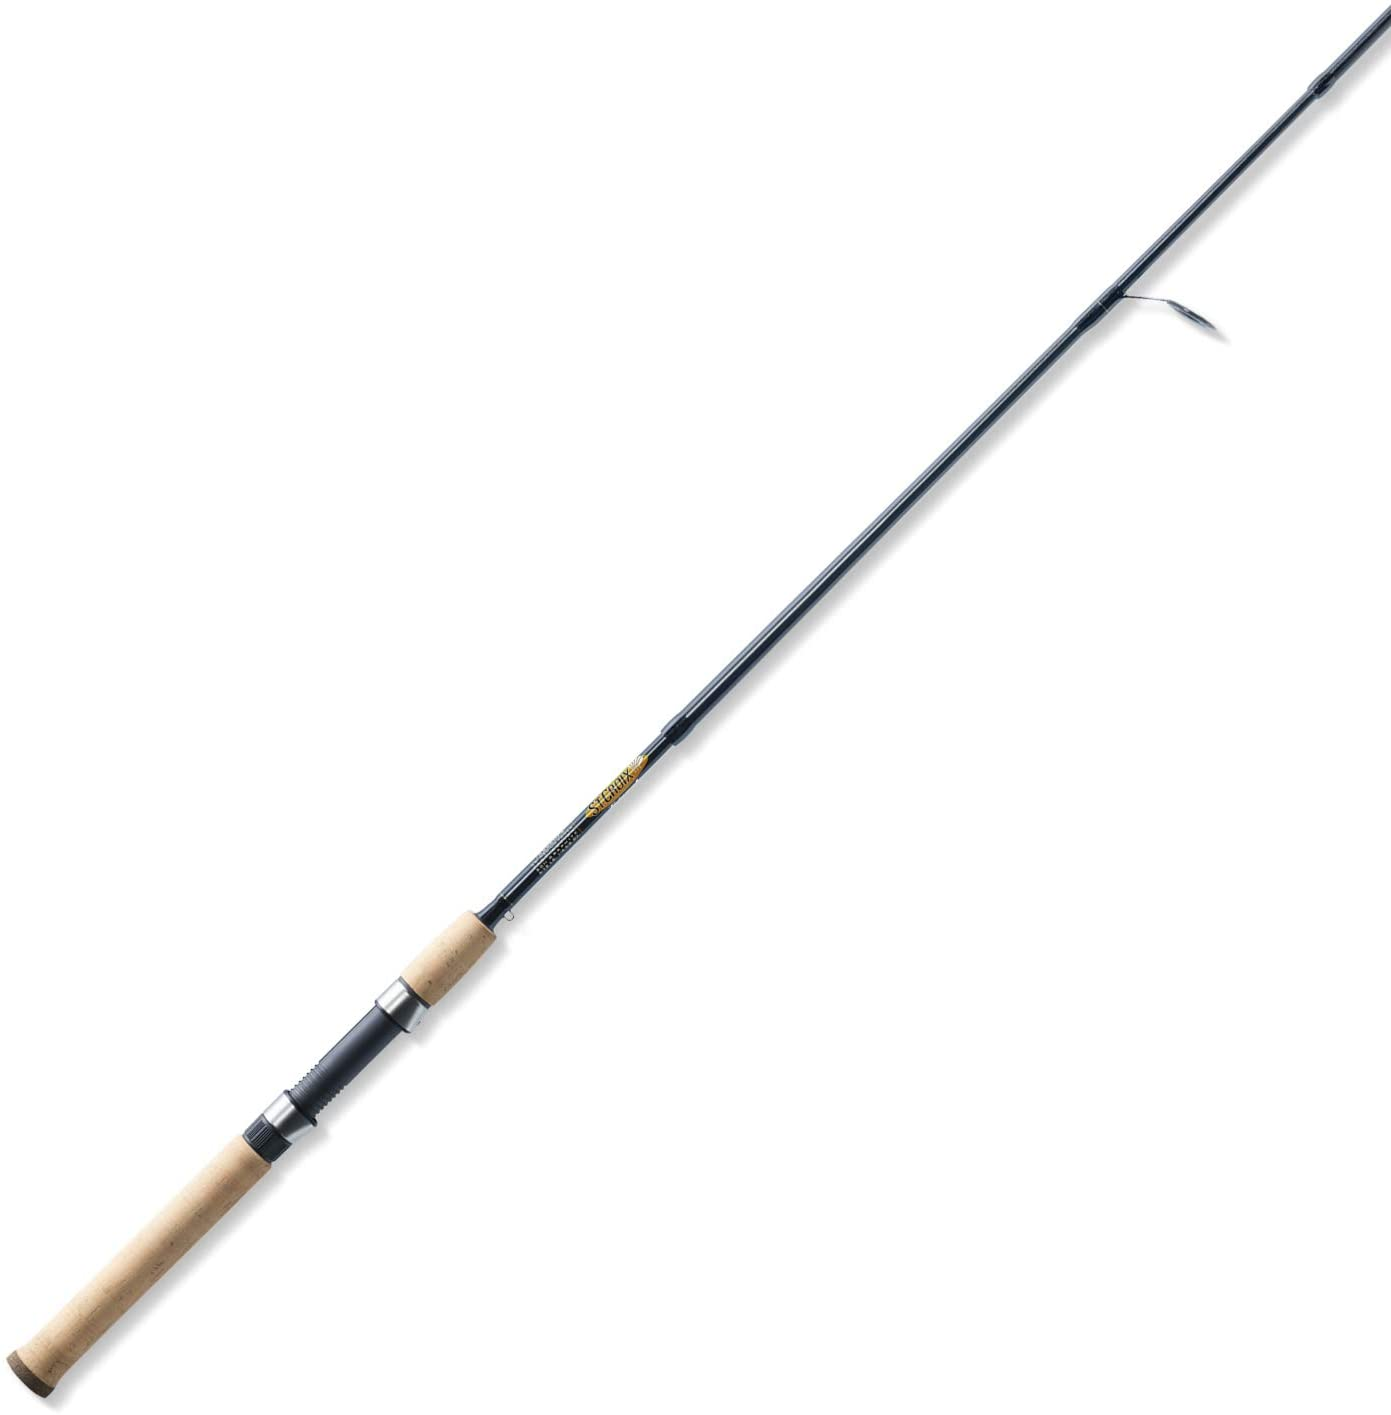 St. Croix TRS66MF4 Triumph Travel 4-Piece Graphite Spinning Fishing Rod